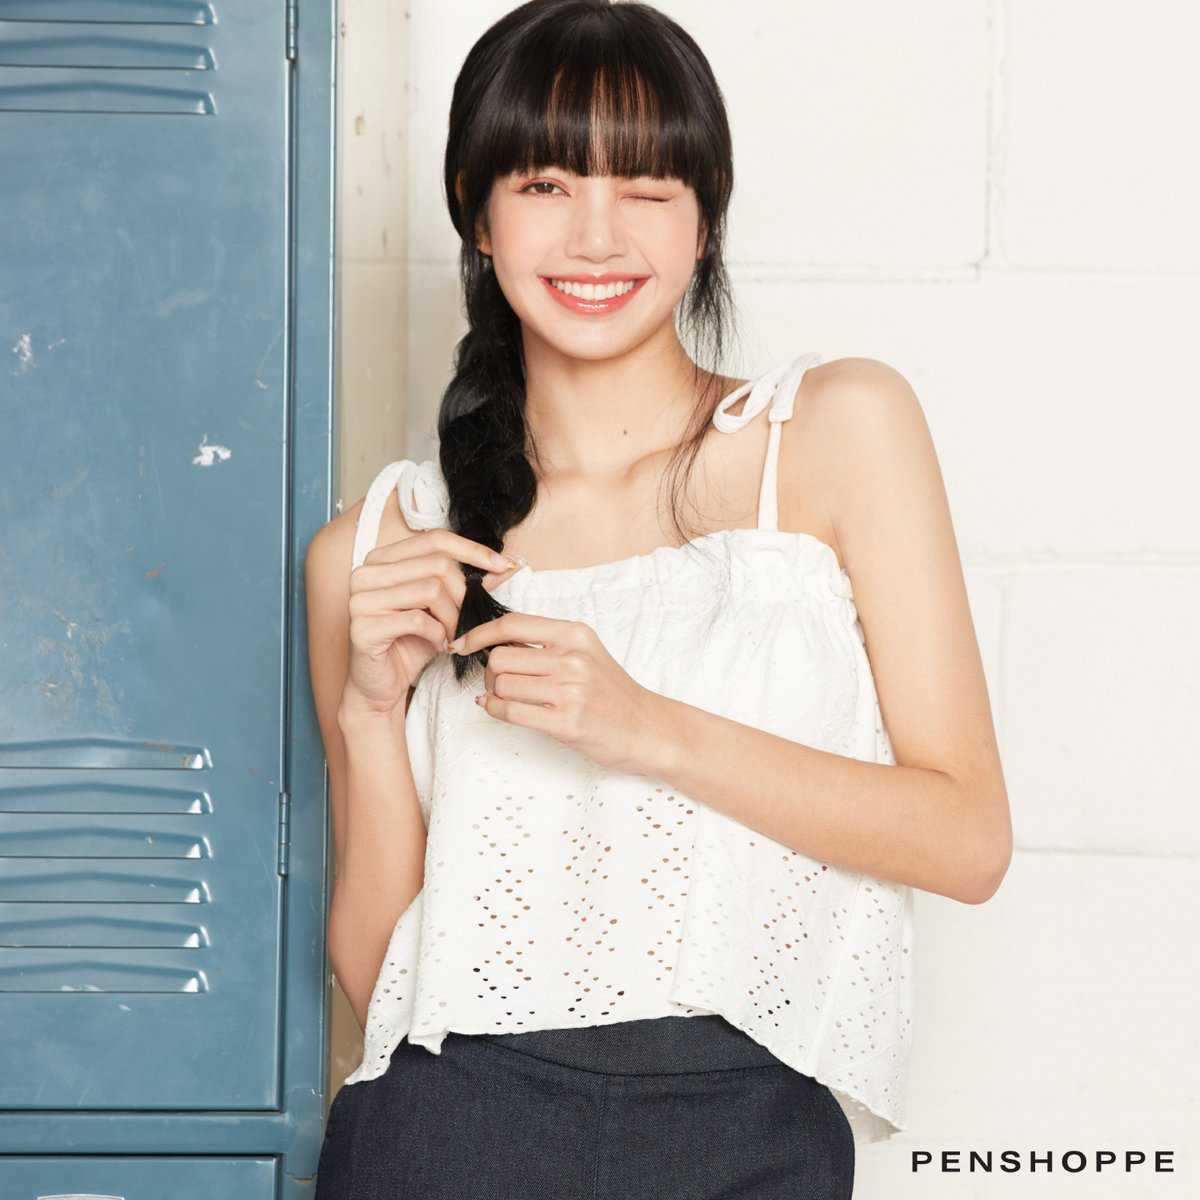 Leave it to our style queen #LISA to show us how to pull off a cute date look 😜  Eyelet Top P699  Shop this Lisa style here:   Also available in Shopee, Lazada, and Zalora.  #LisaForPenshoppe #PenshoppeBetterDays